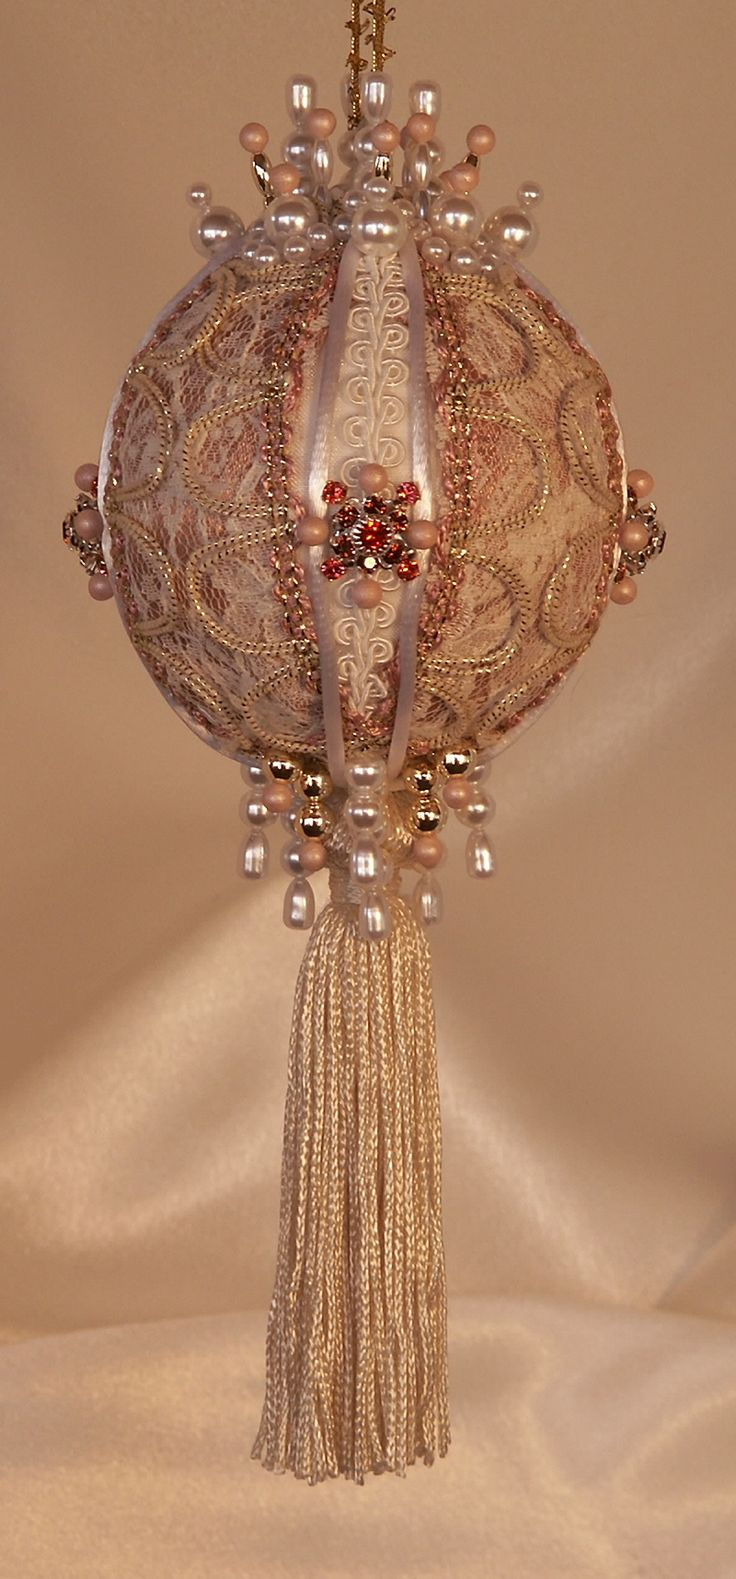 Rose colored ornaments - Victorian Style Ornaments - Heirloom ornaments